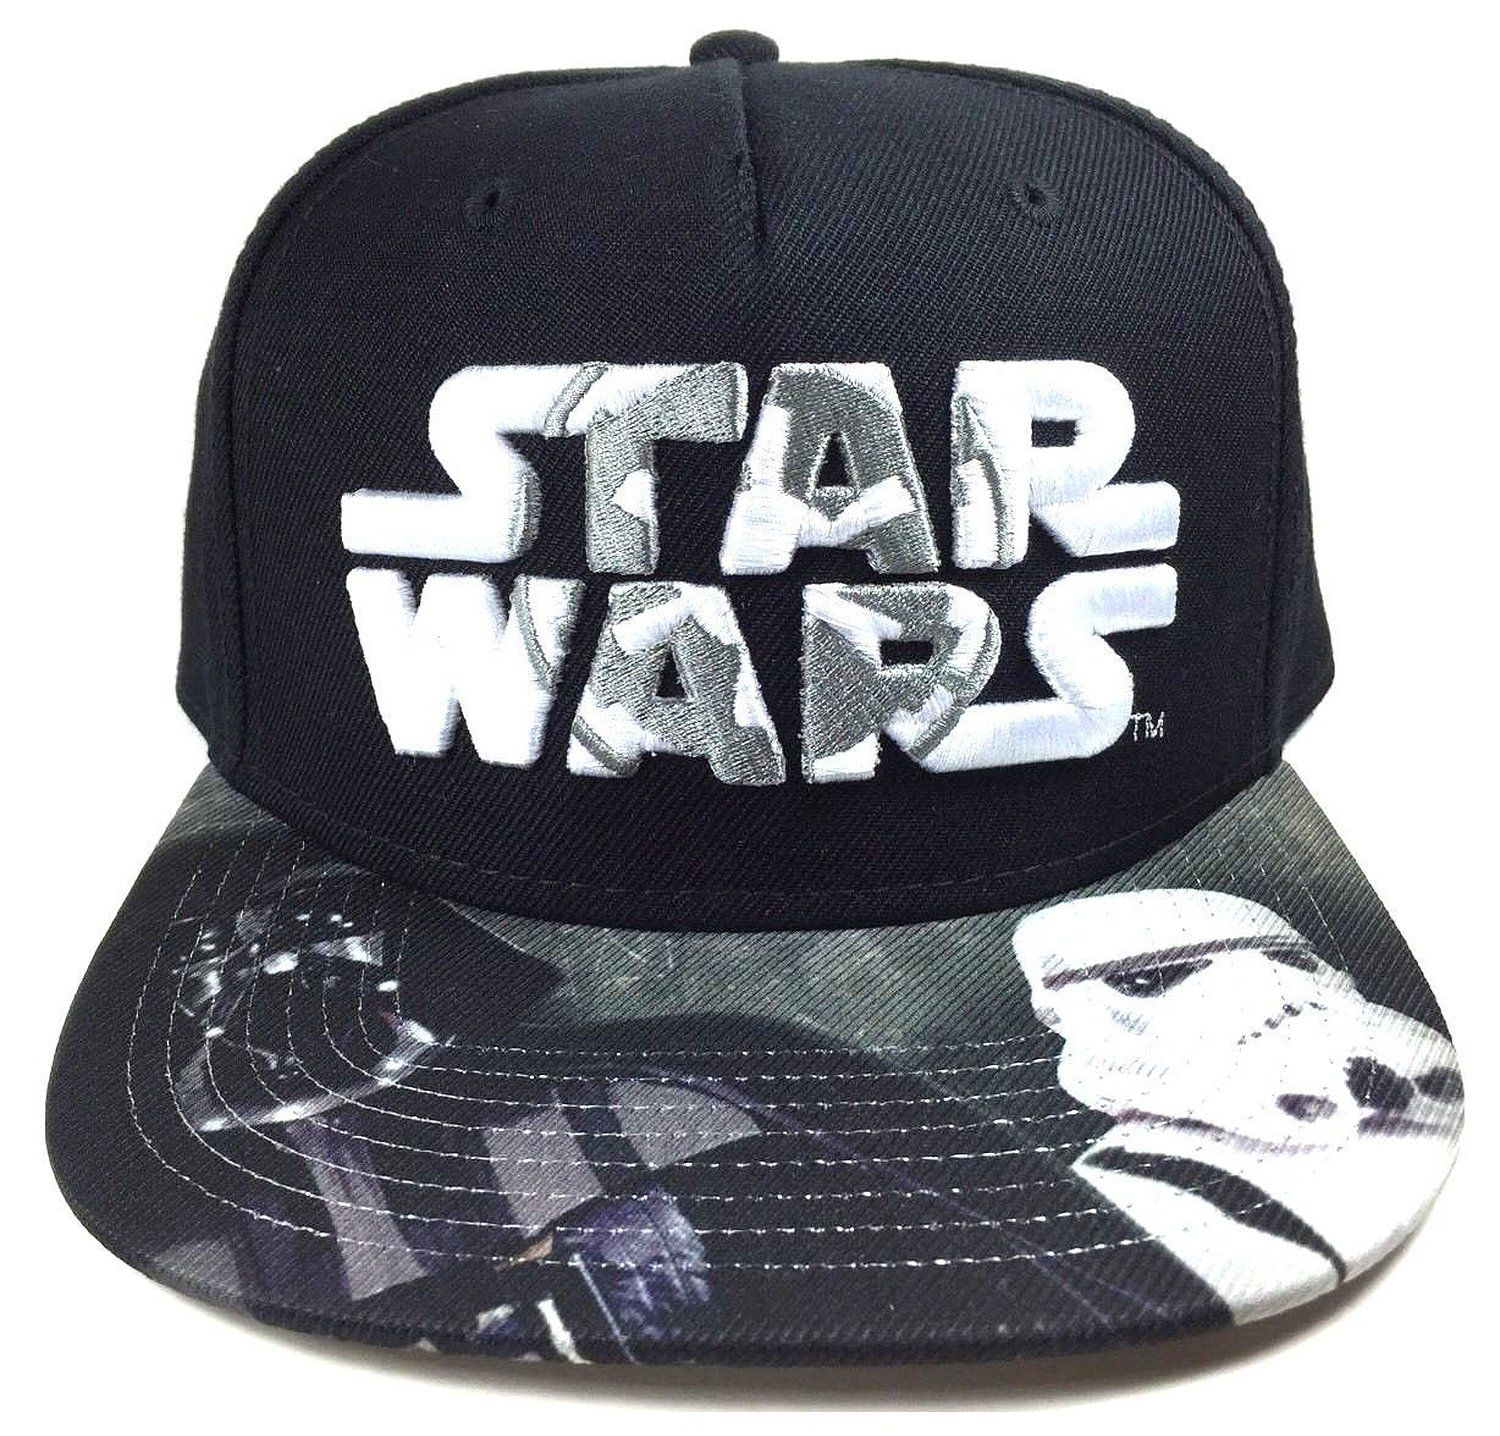 2ead12e8aebb9 AmazonSmile  Star Wars Darth Vader Stormtrooper Galactic Empire Logo  Snapback  Clothing